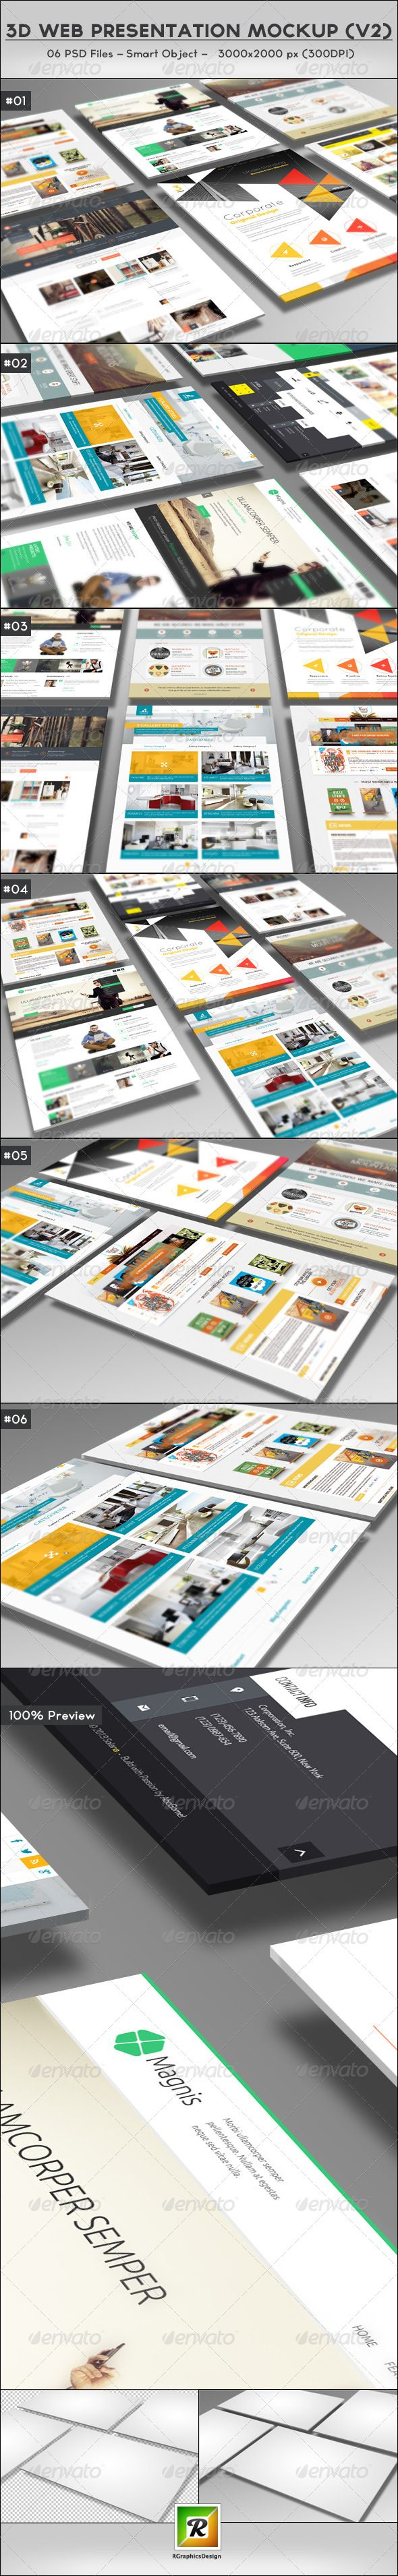 3D Web Presentation Mockup (V2) | R-GRAPHICS DESIGN  Features:  06 PSD Files Pixel Dimension: 3000×2000 Smart Object To Edit High Resolution: 300 DPI Layered PSD File